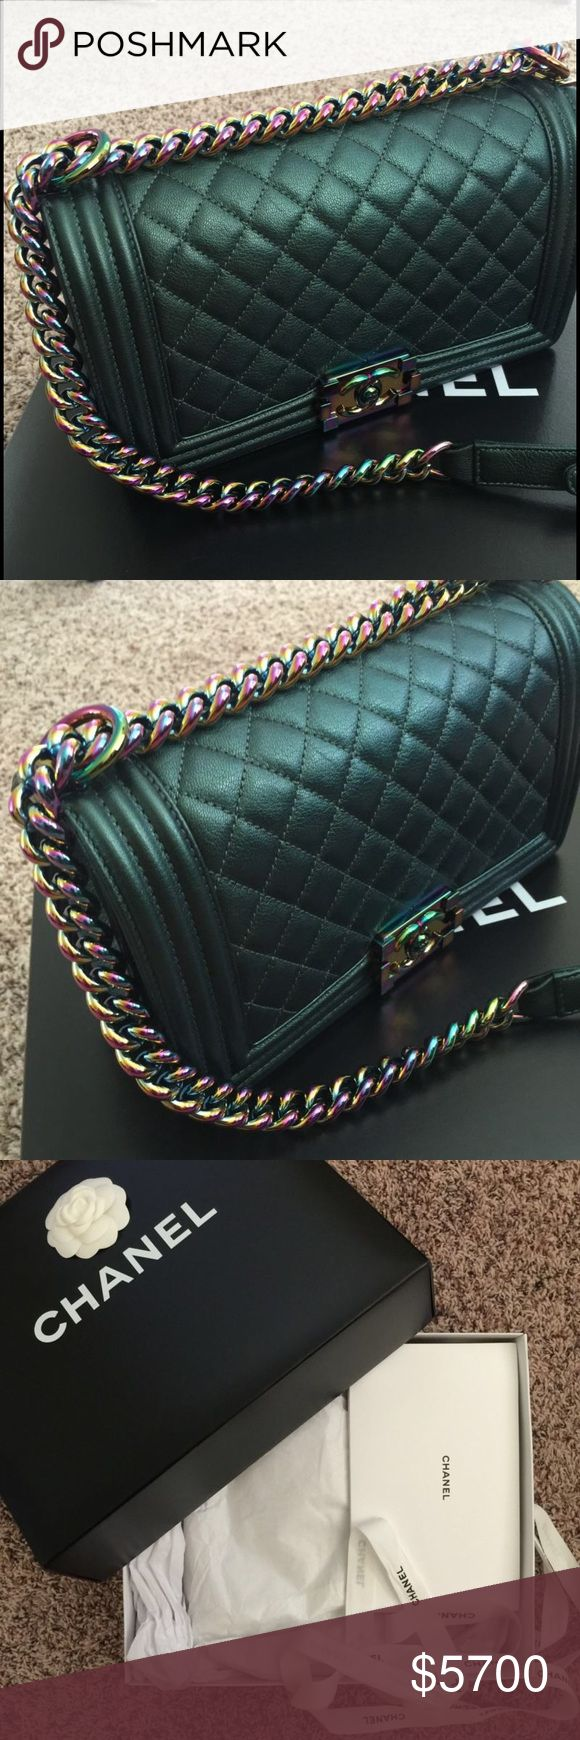 RARE Chanel Iridescent Boy RARE Chanel Iridescent Boy Mermaid Bag Rainbow Hardware. Proof of authentication CHANEL Bags Shoulder Bags